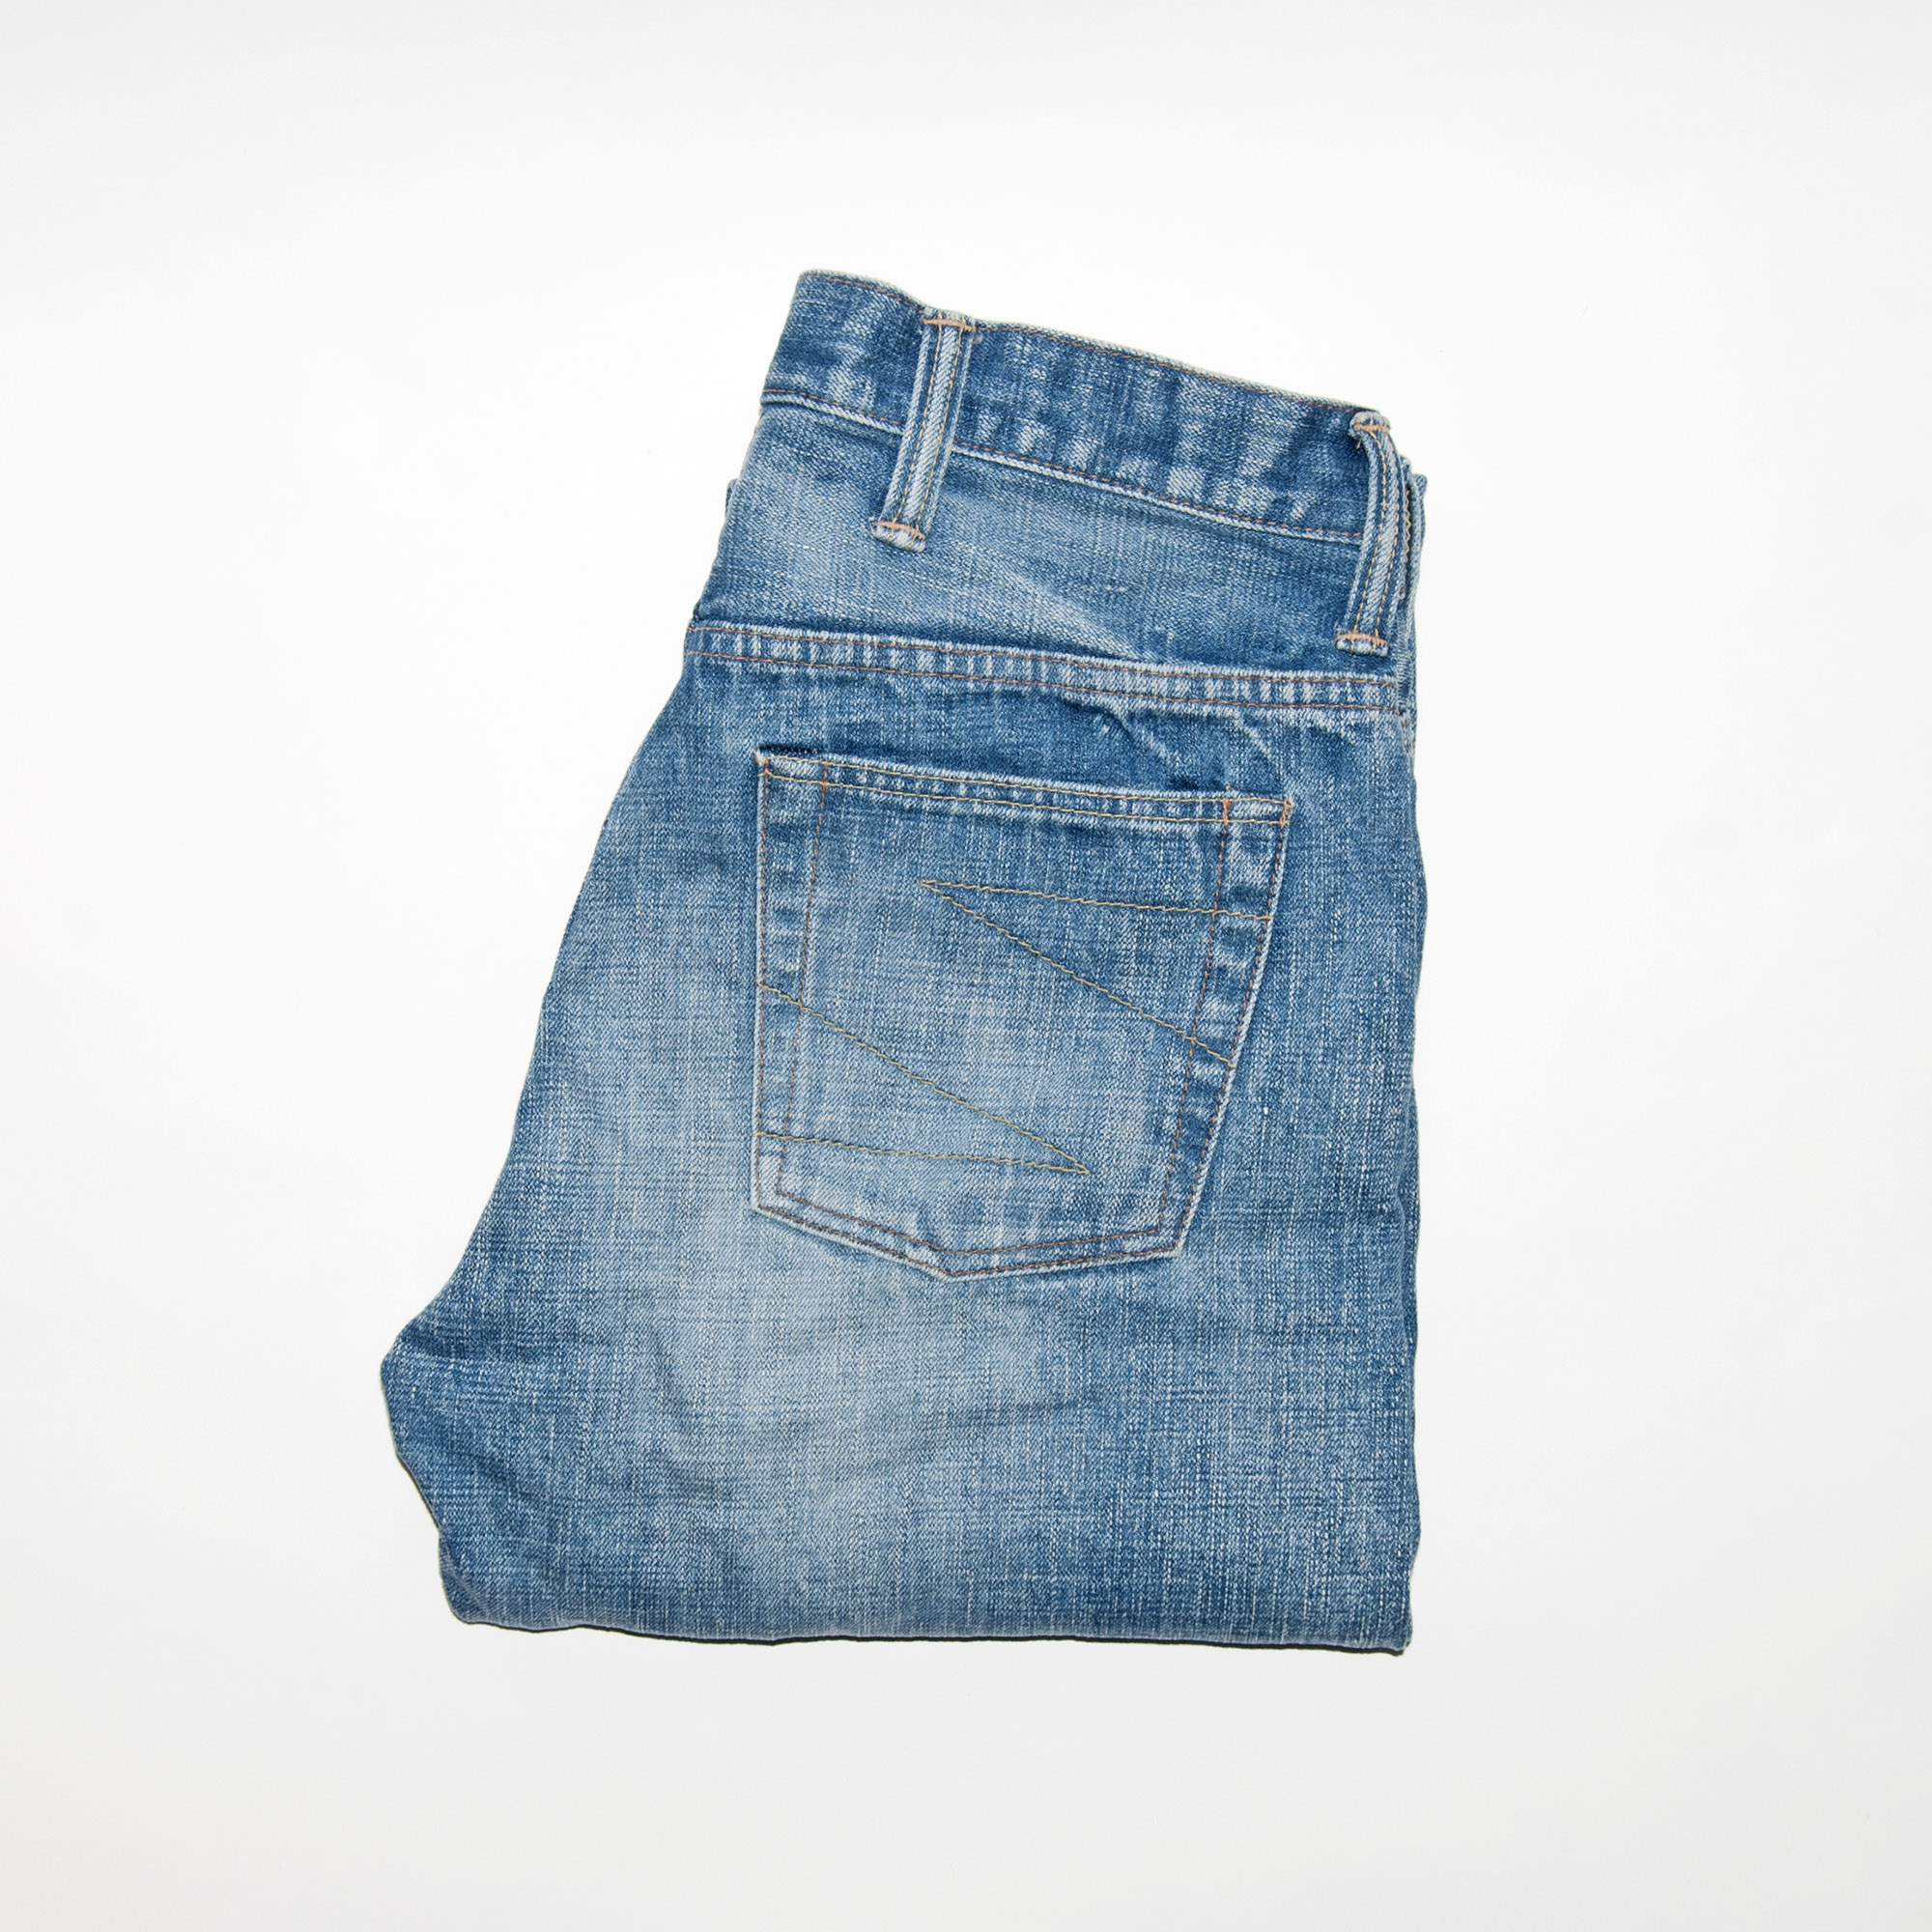 6dfc746d3 jean04 washed. 1610755 630136317093429 6474742269509046036 n